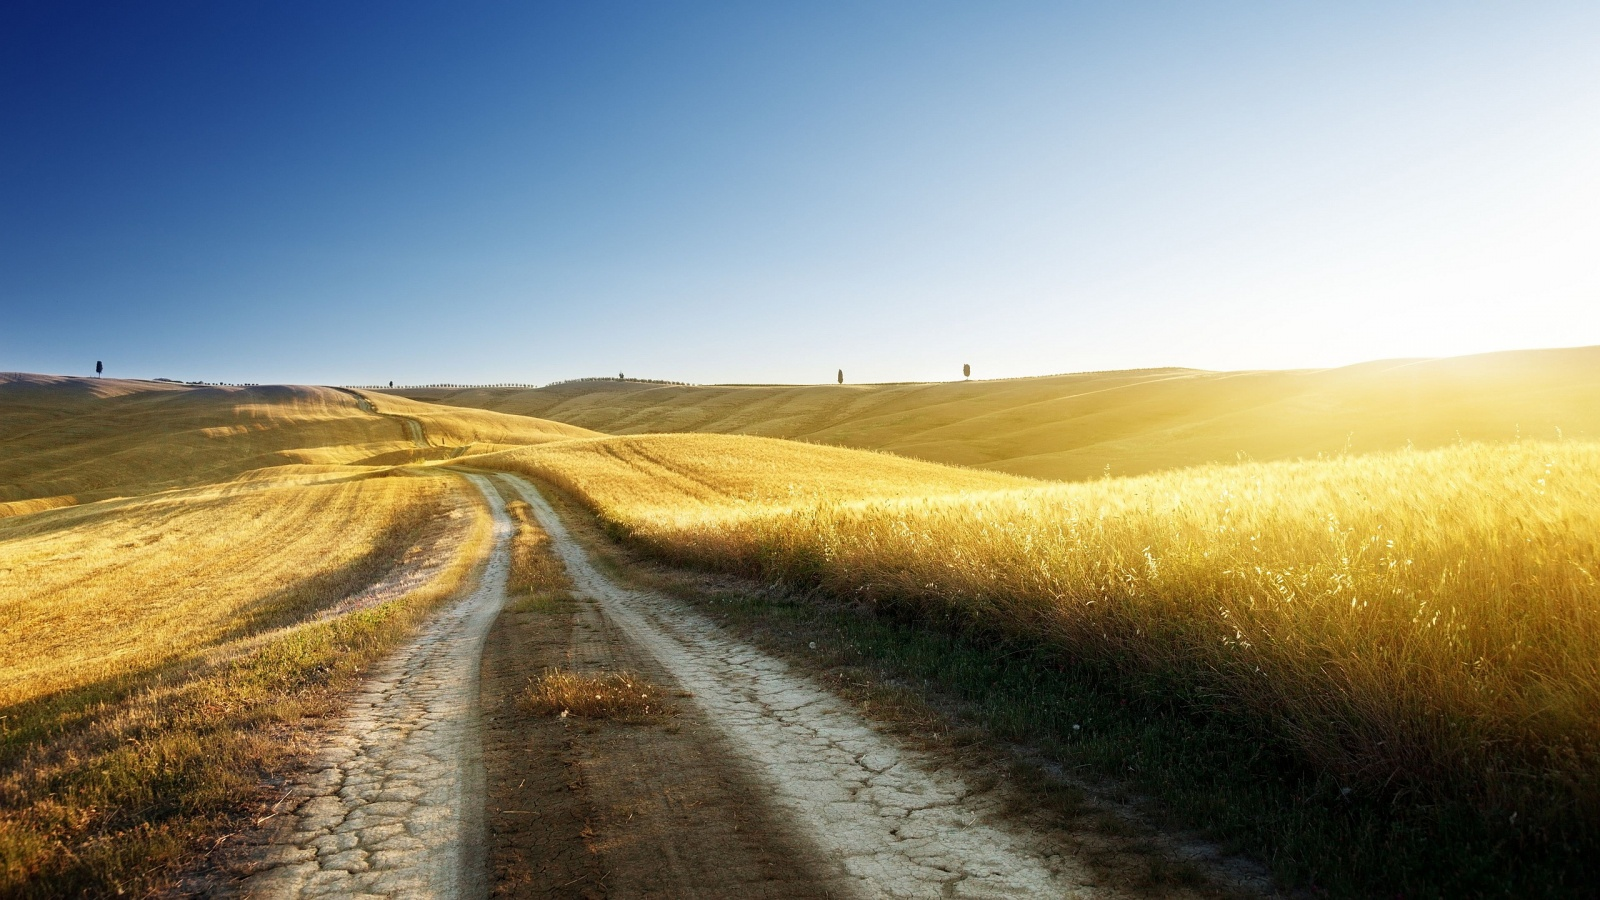 11 Beautiful Road Wallpapers HD The Nology